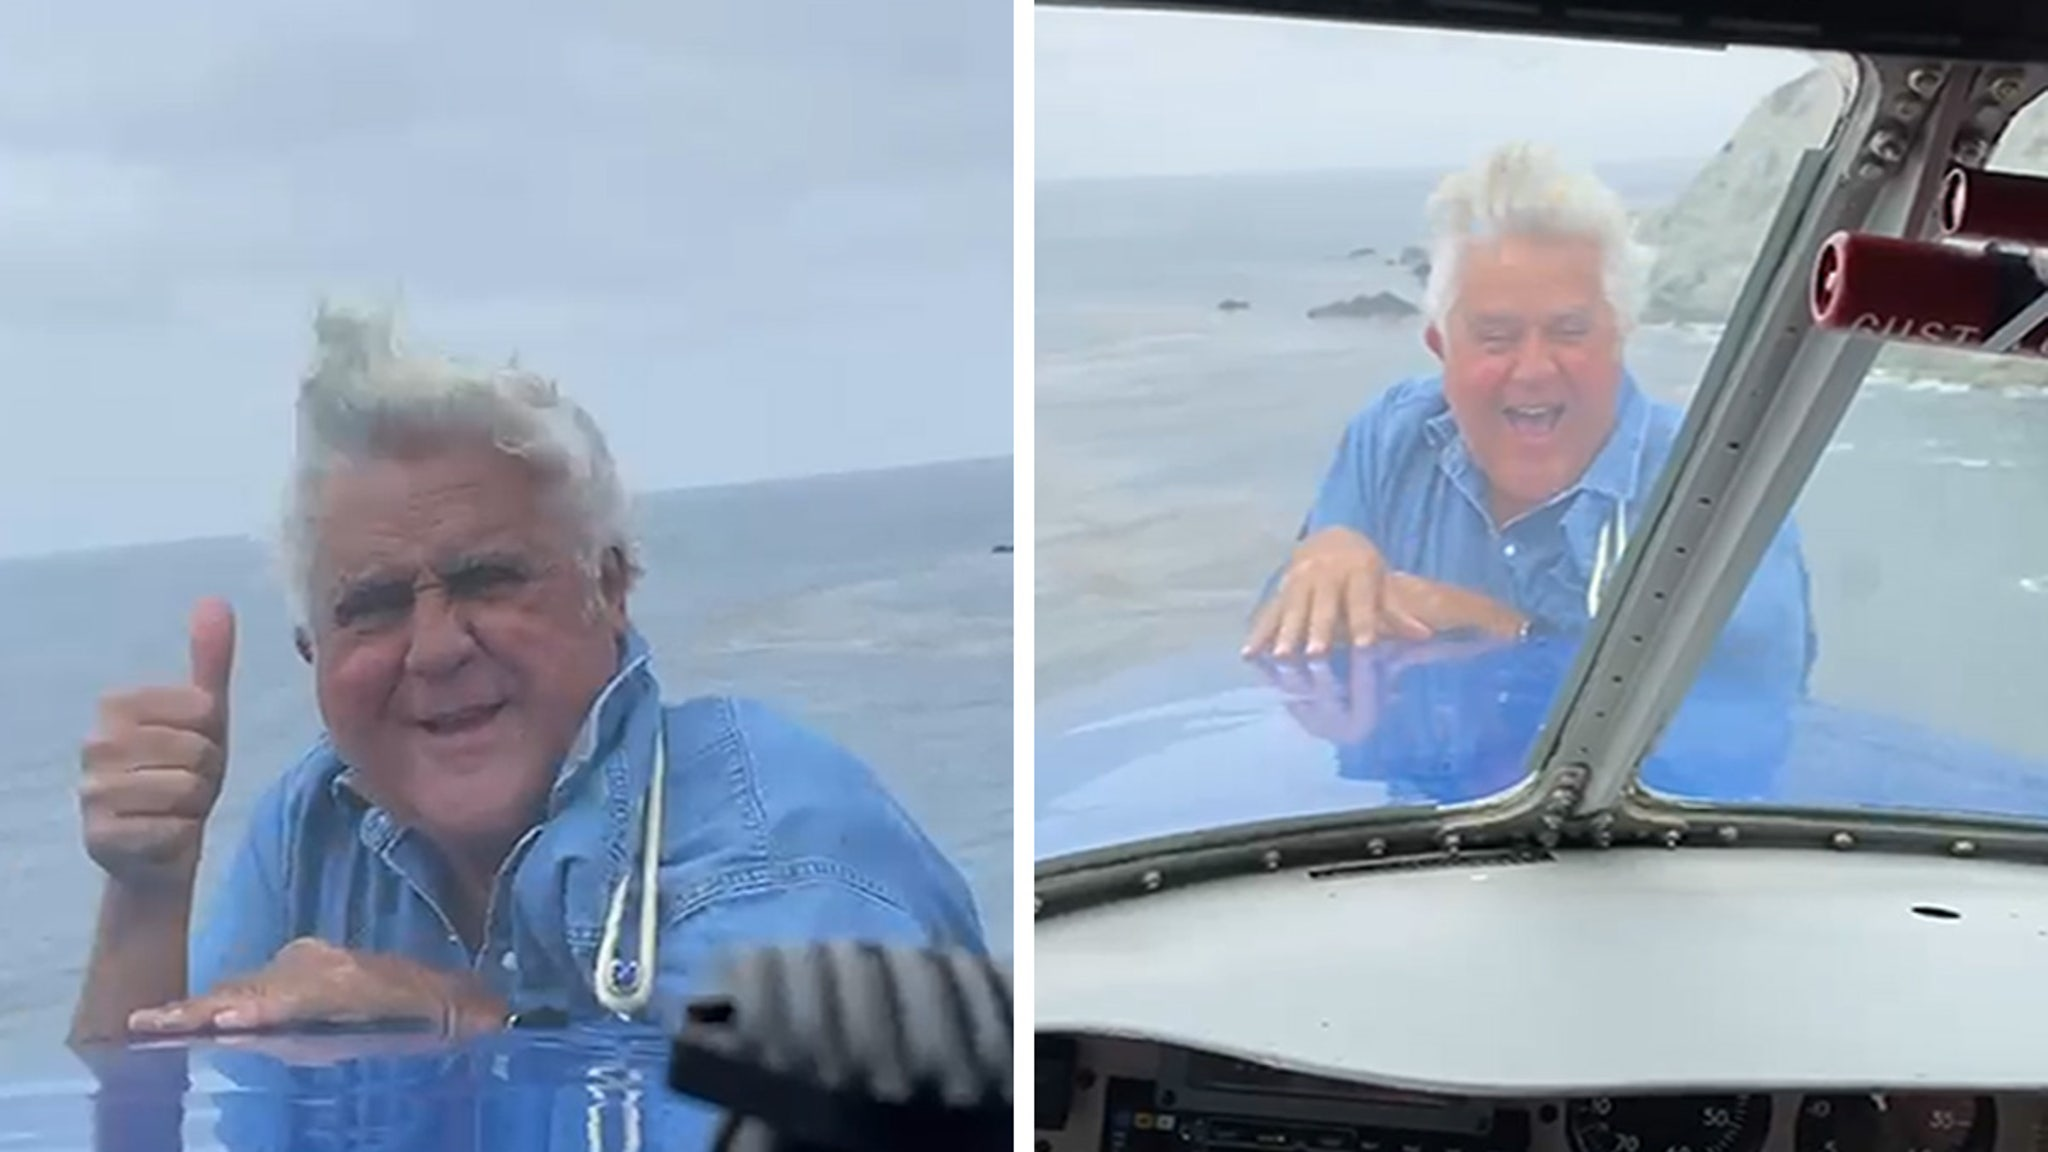 Jay Leno Hangs on Front of Airplane in Wild Video thumbnail